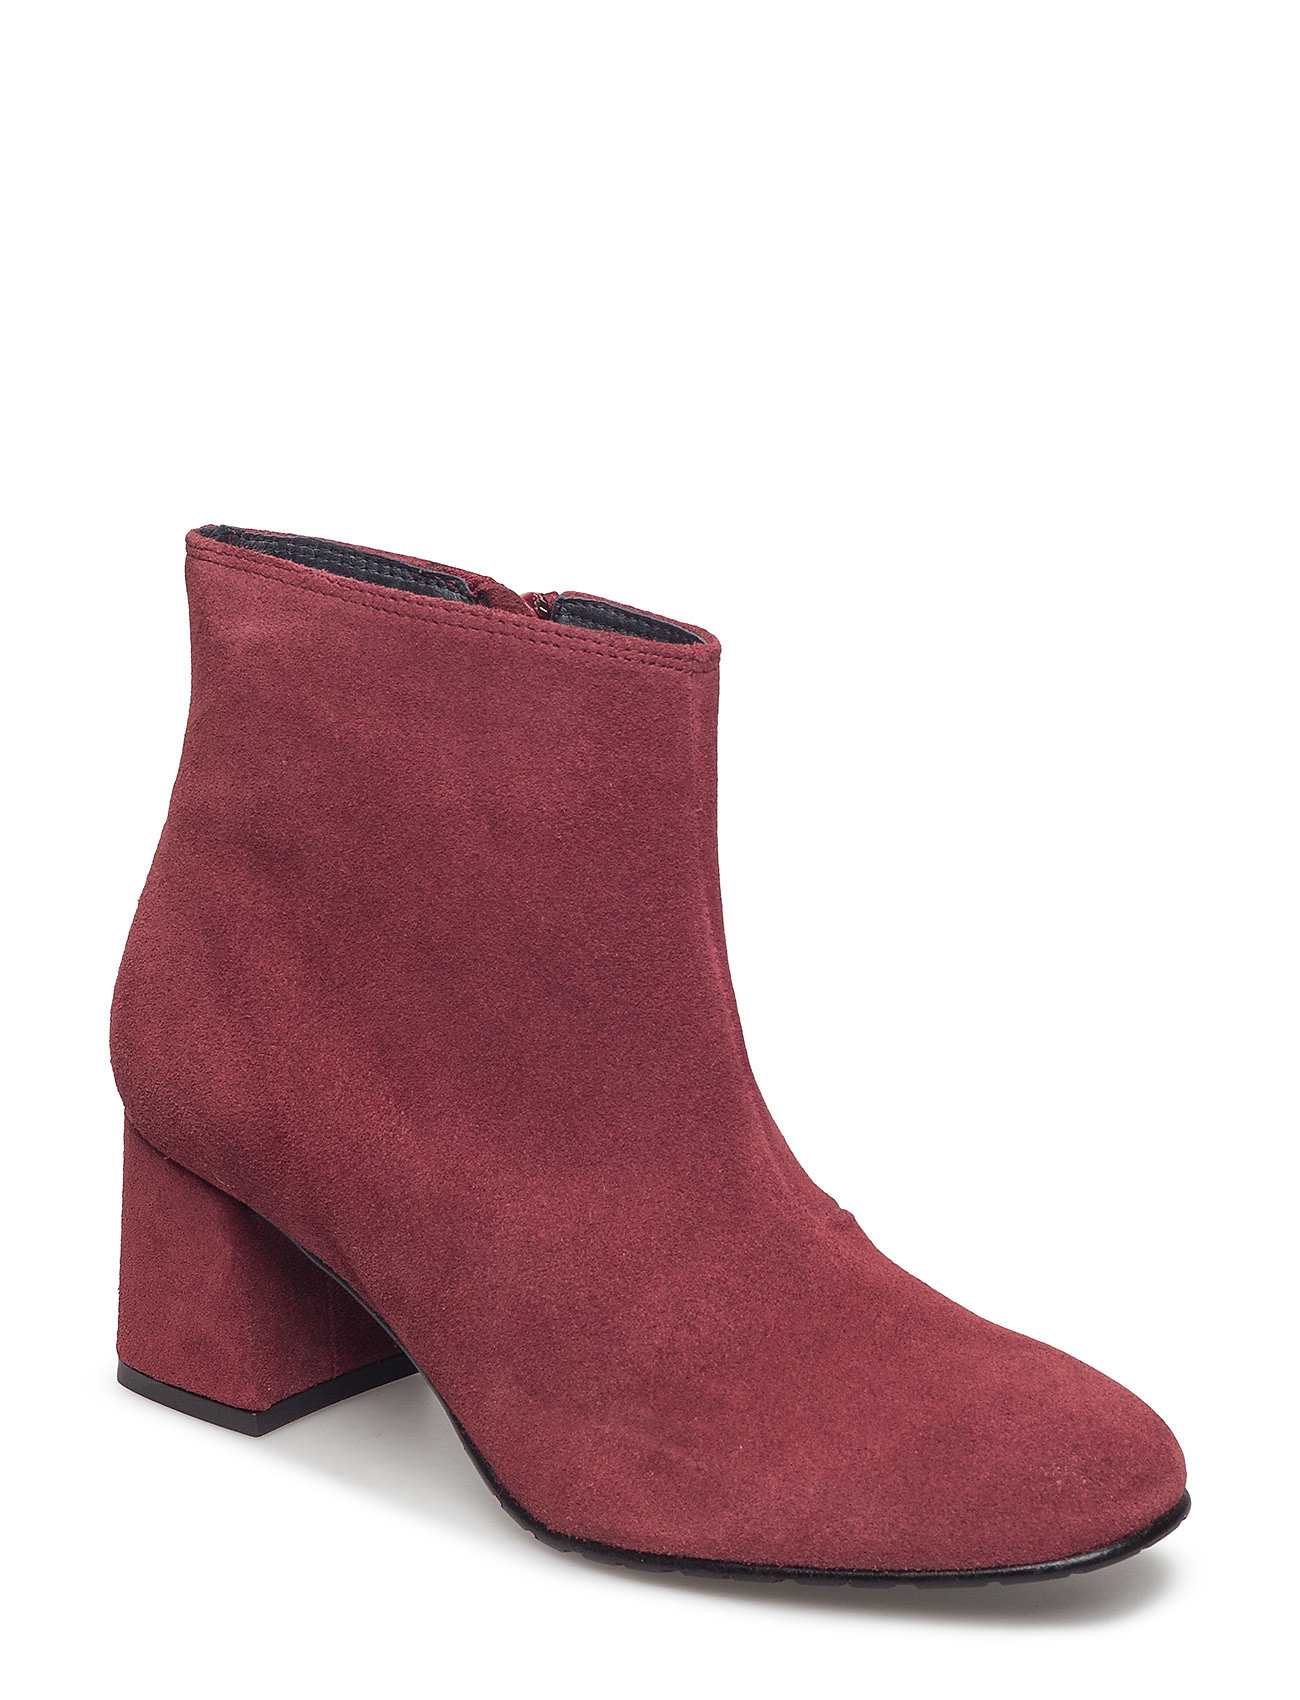 Image of Suede Ankle Boot Shoes Boots Ankle Boots Ankle Boot - Heel Rød Ilse Jacobsen (3040299929)